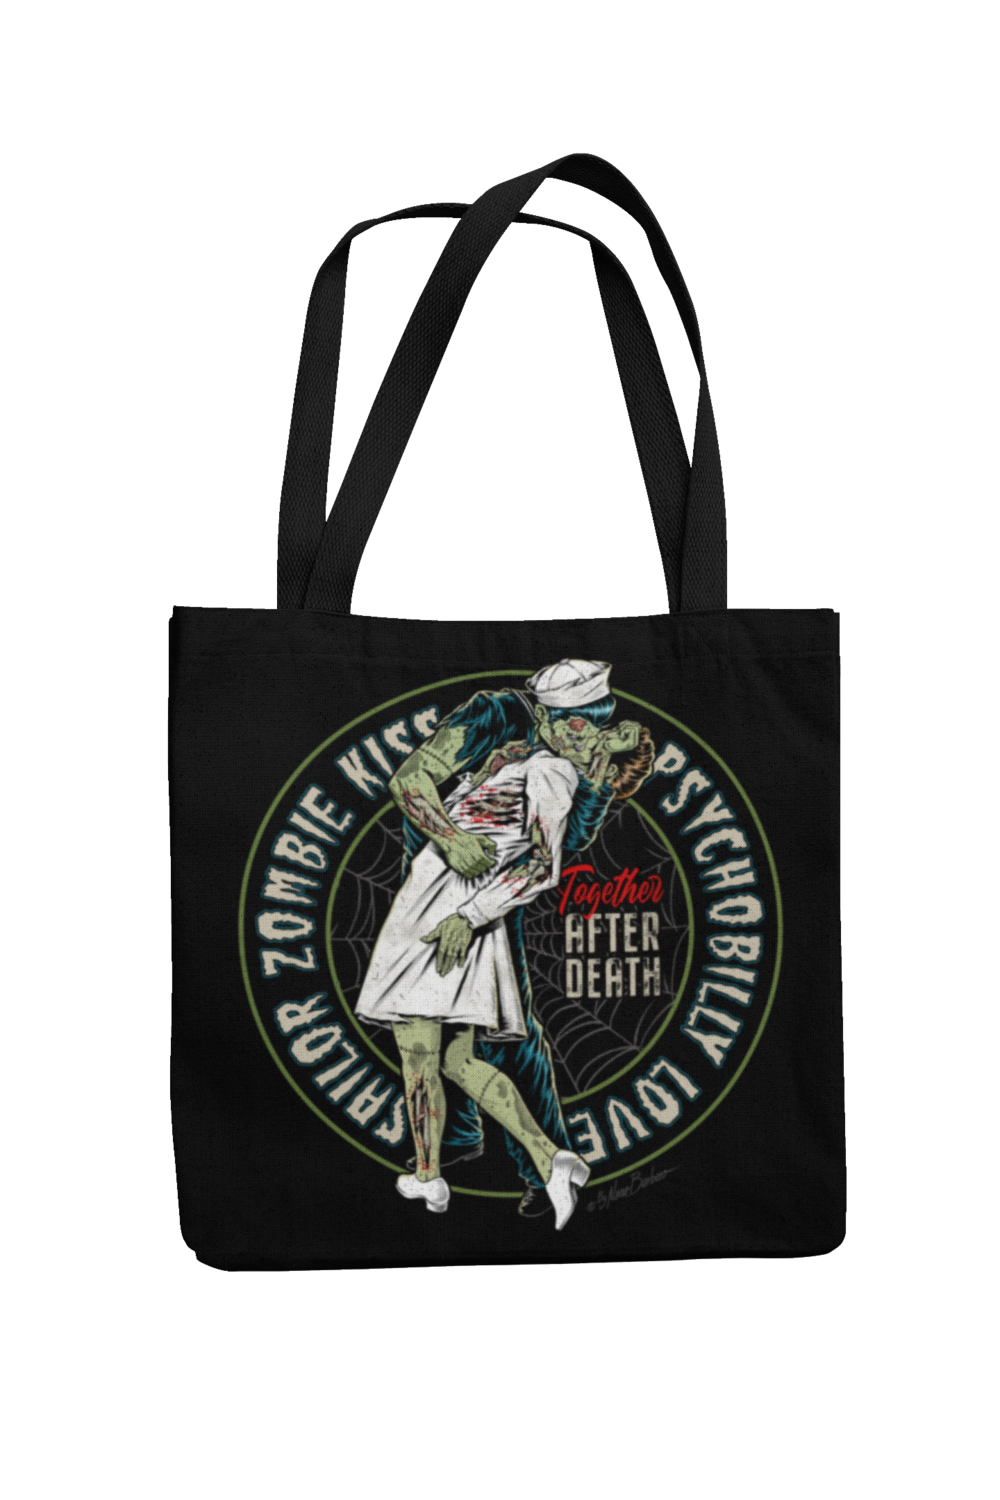 Cotton Bag Sailor zombie kiss design by NANO BARBERO